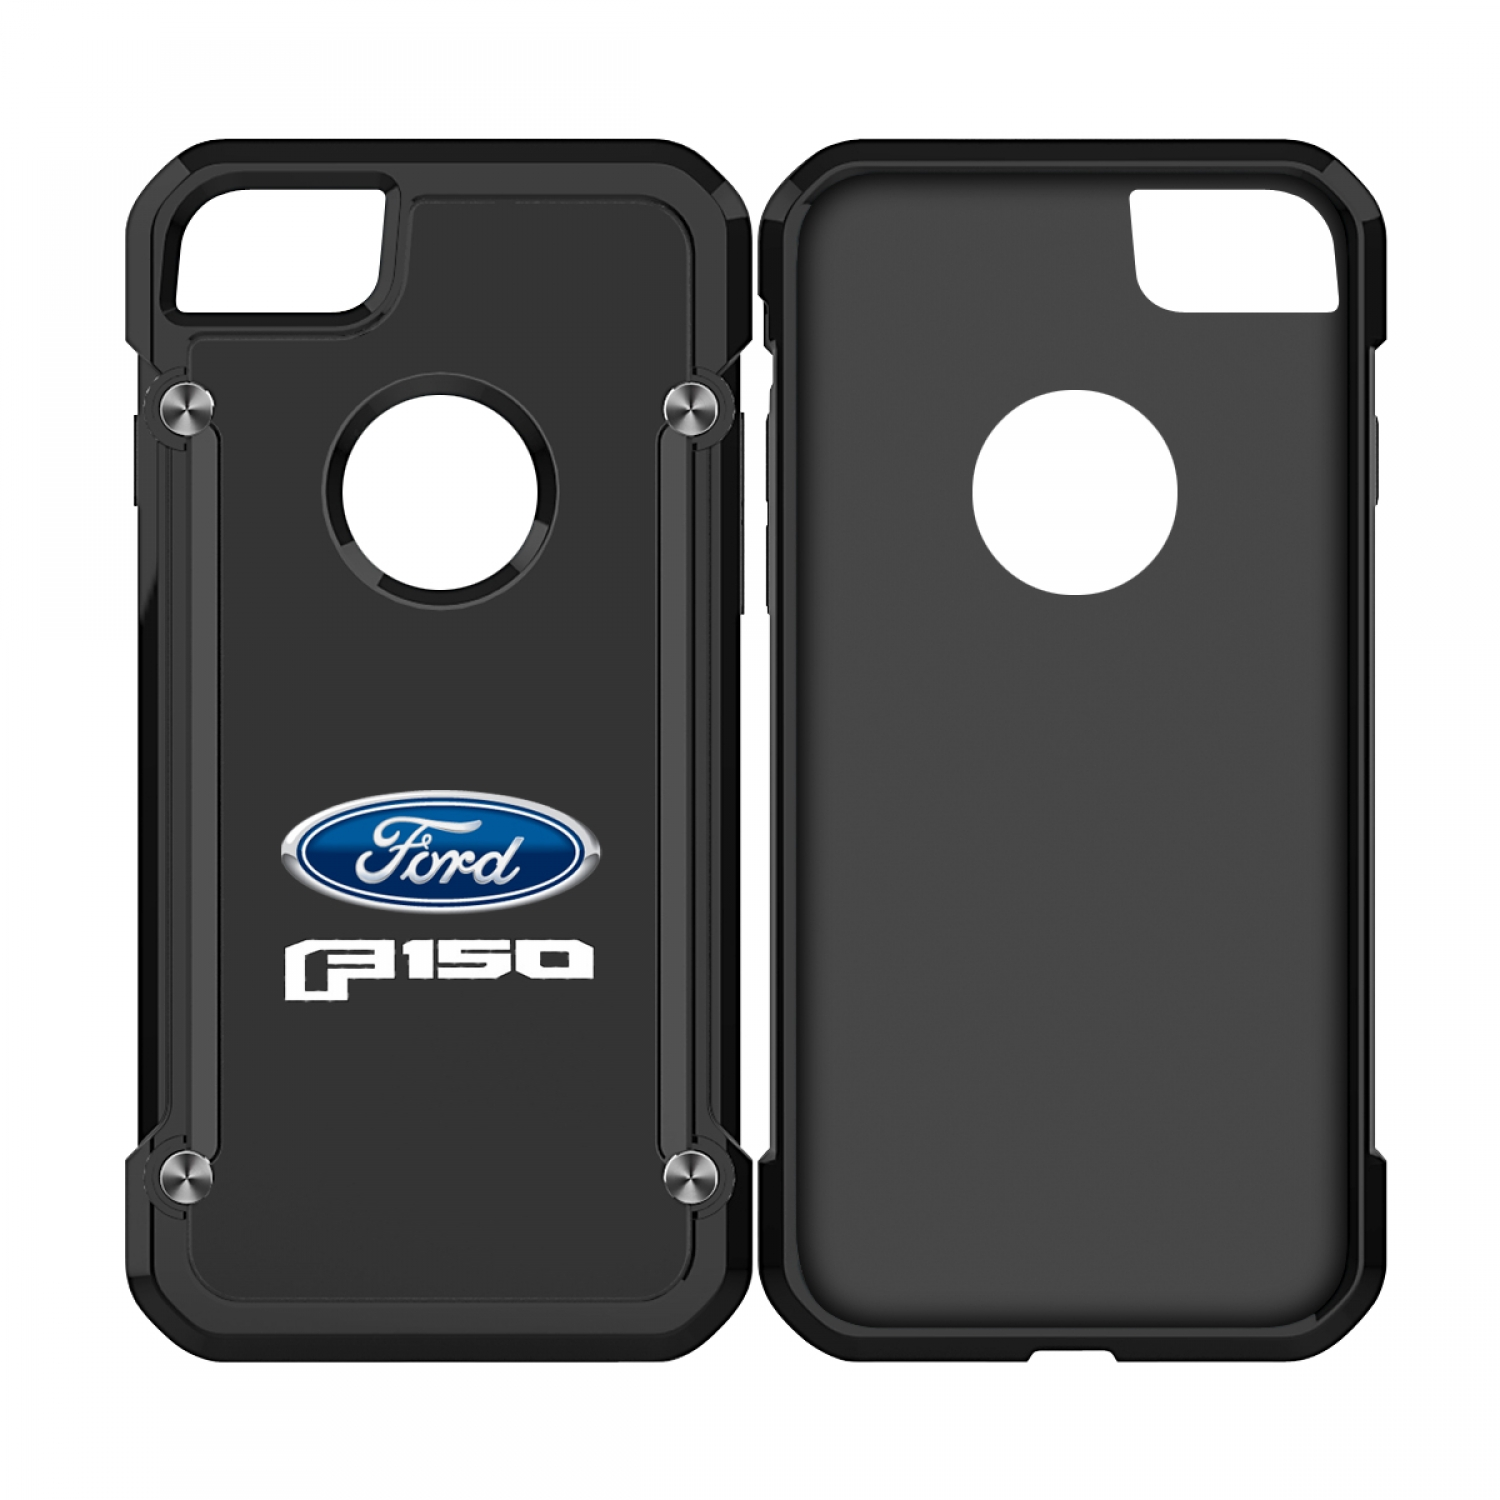 Ford F150 2015 iPhone 7 iPhone 8 TPU Shockproof Black Cell Phone Case